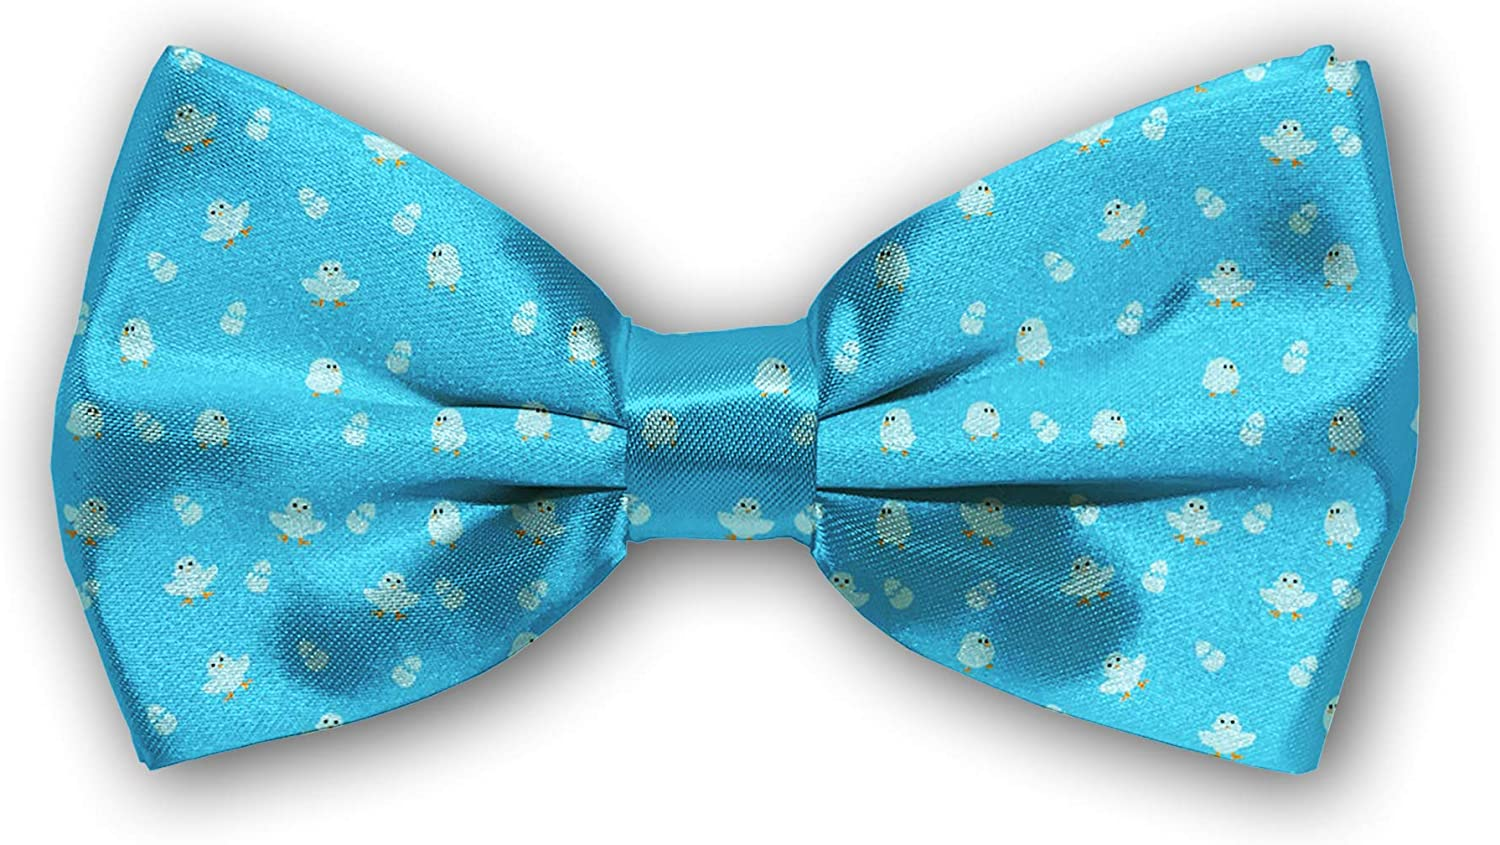 Bow Tie Dallas Mall Tuxedo Recommended Butterfly Cotton Bowtie Boys for Mens Adjustable